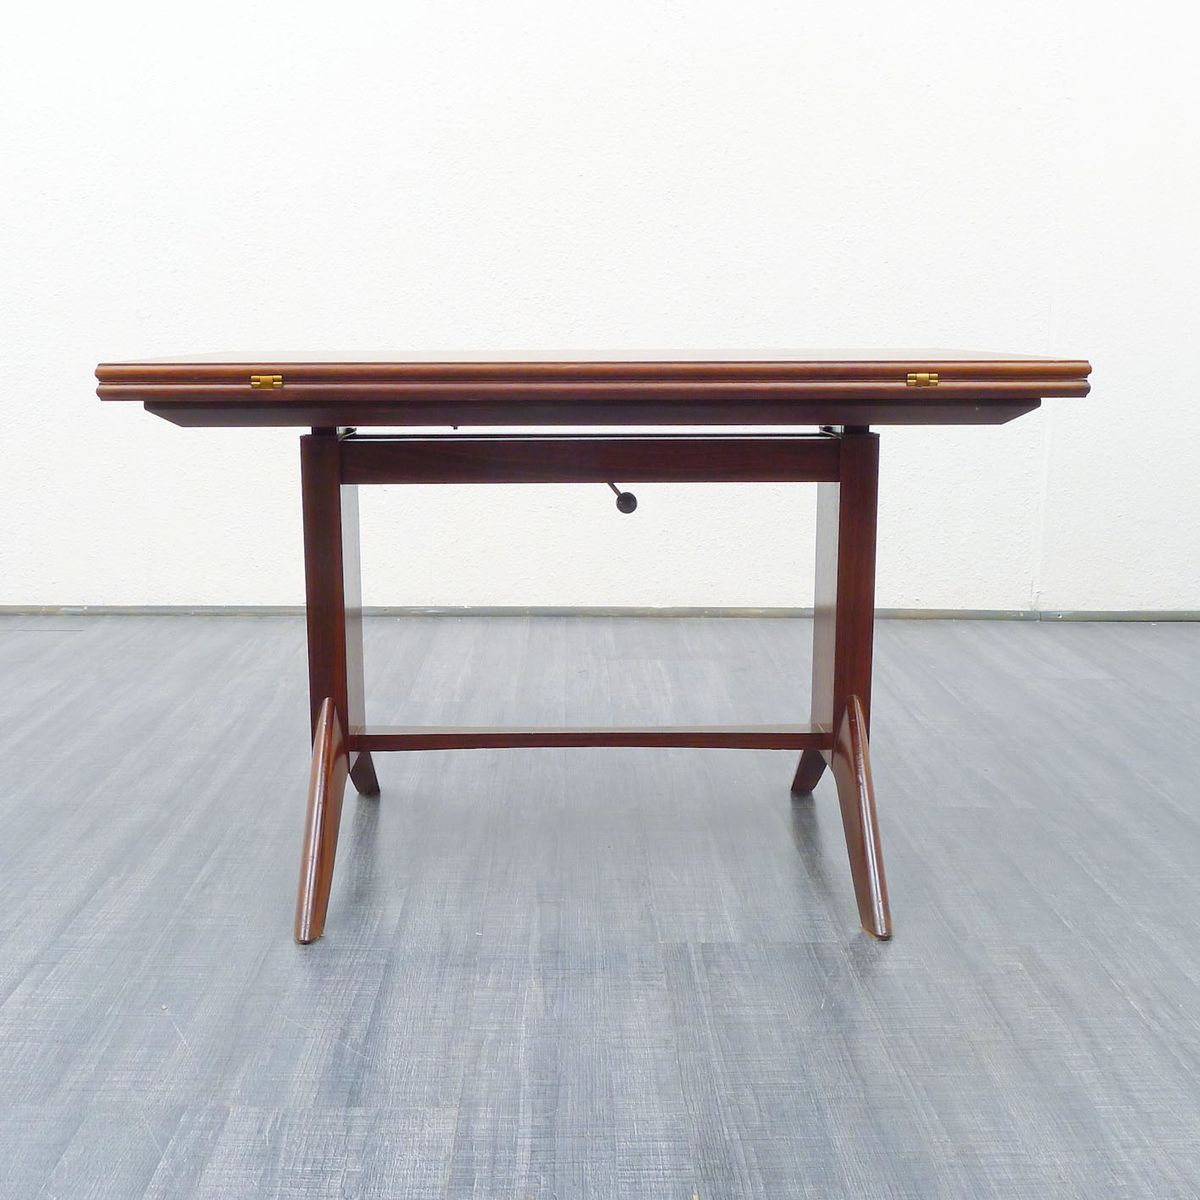 Rosewood coffee or dining table from wilhelm renz 1950s for sale at pamono Coffee table to dining table